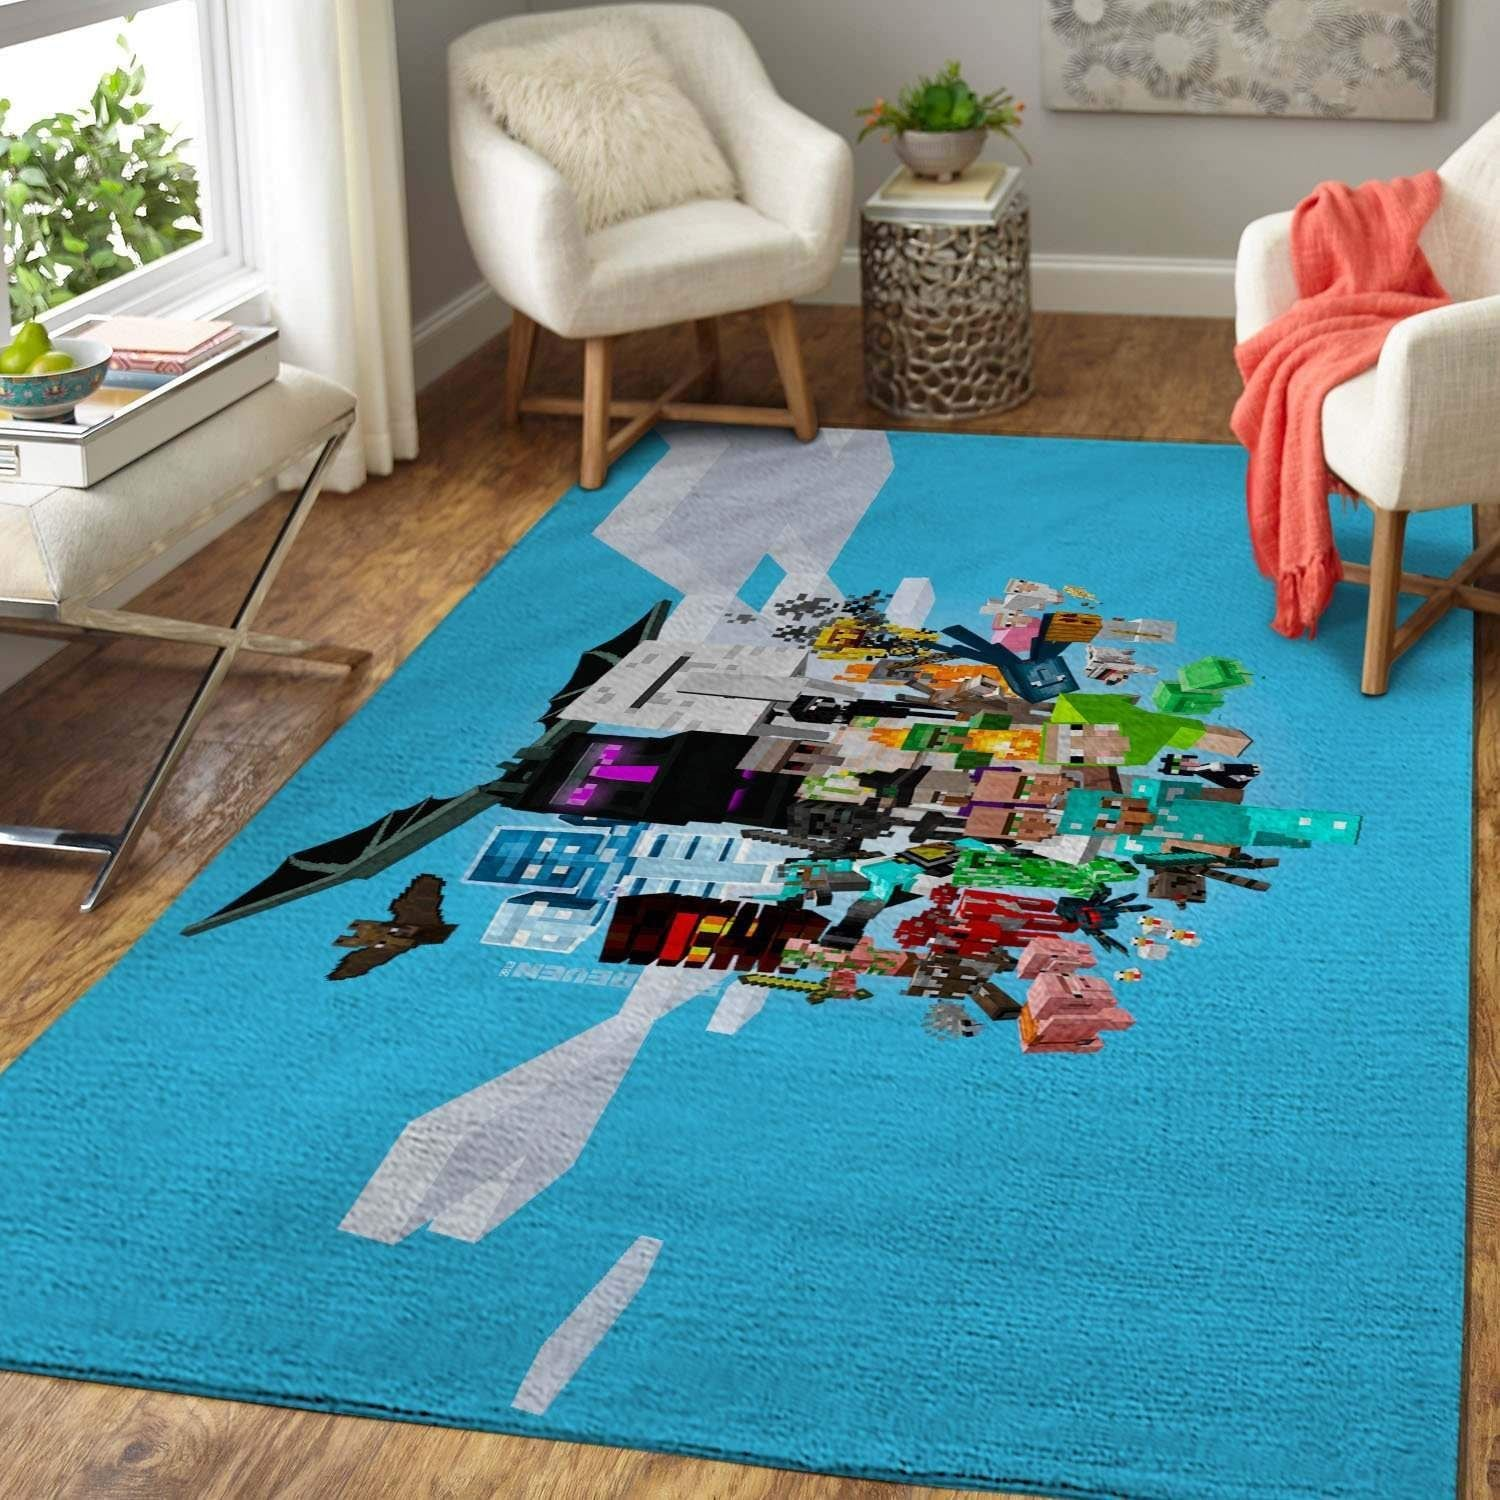 Minecraft Area Rug - Gaming Home Decor - HomeBeautyUS